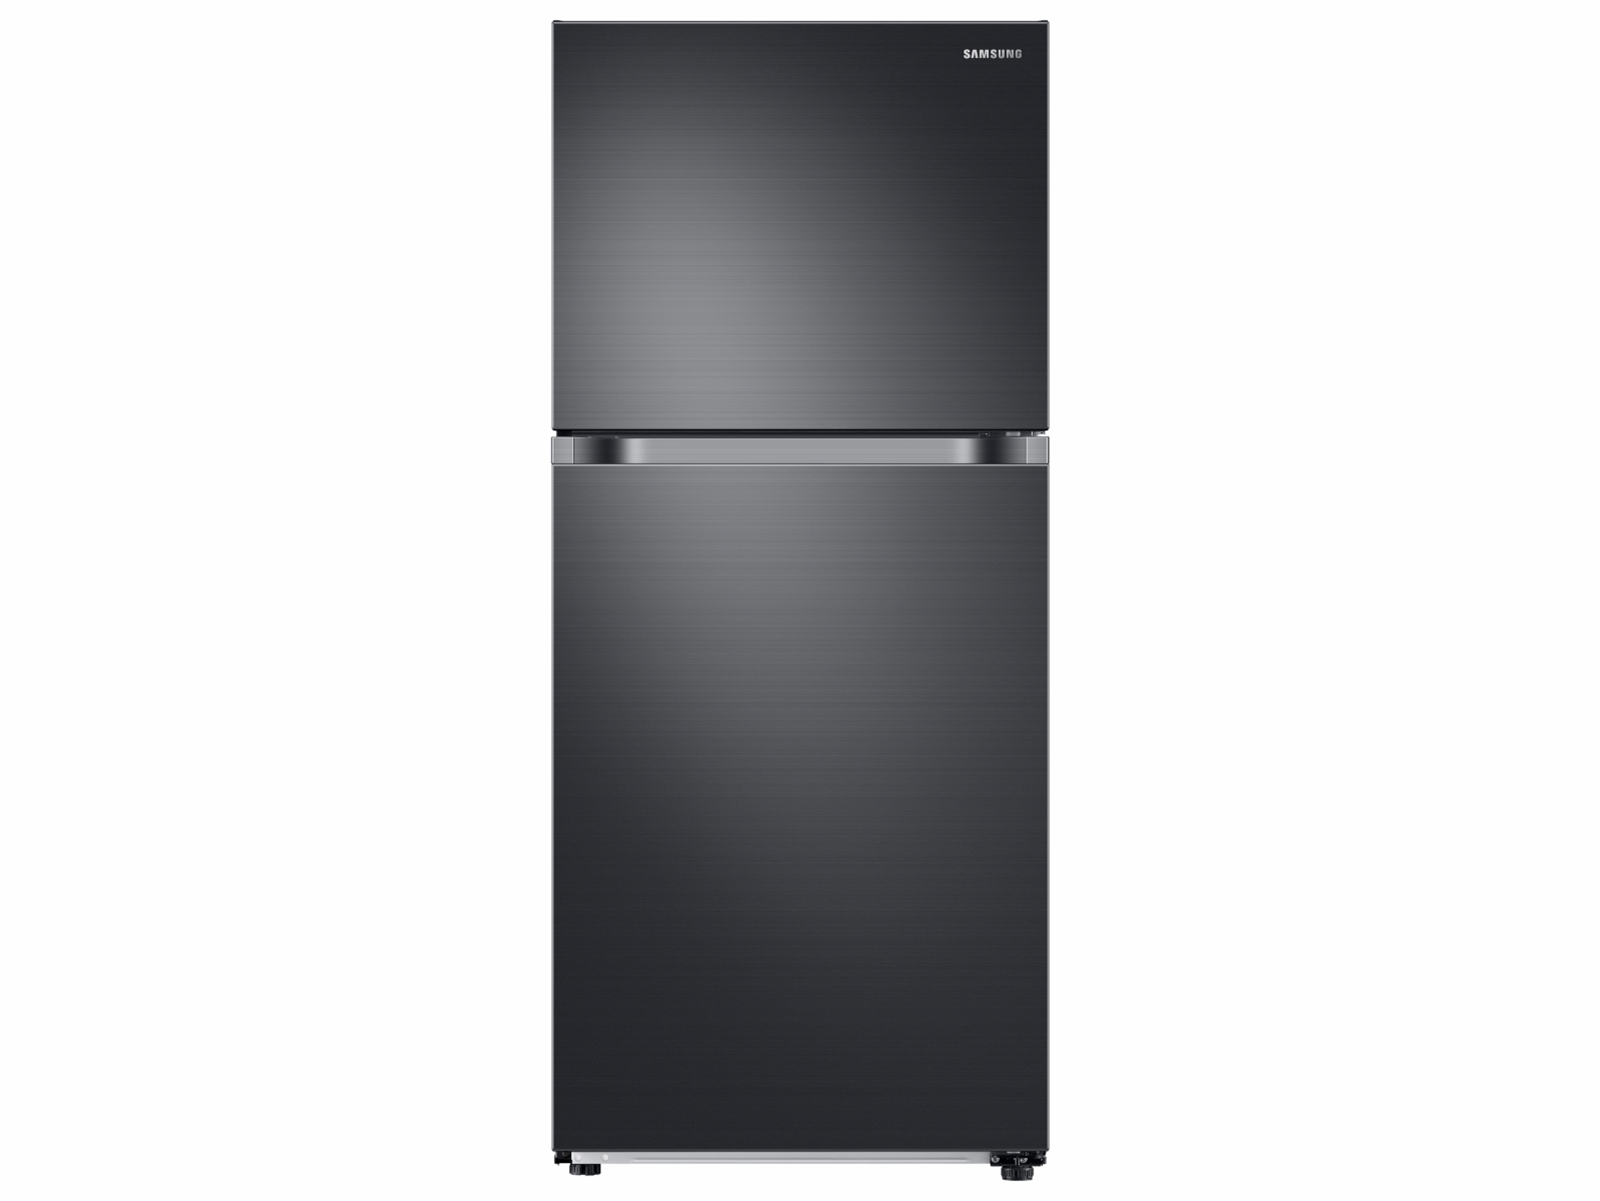 Samsung 18 cu. ft. Top Freezer Refrigerator with FlexZone and Ice Maker in Black Stainless Steel, Fingerprint Resistant Black Stainless Steel